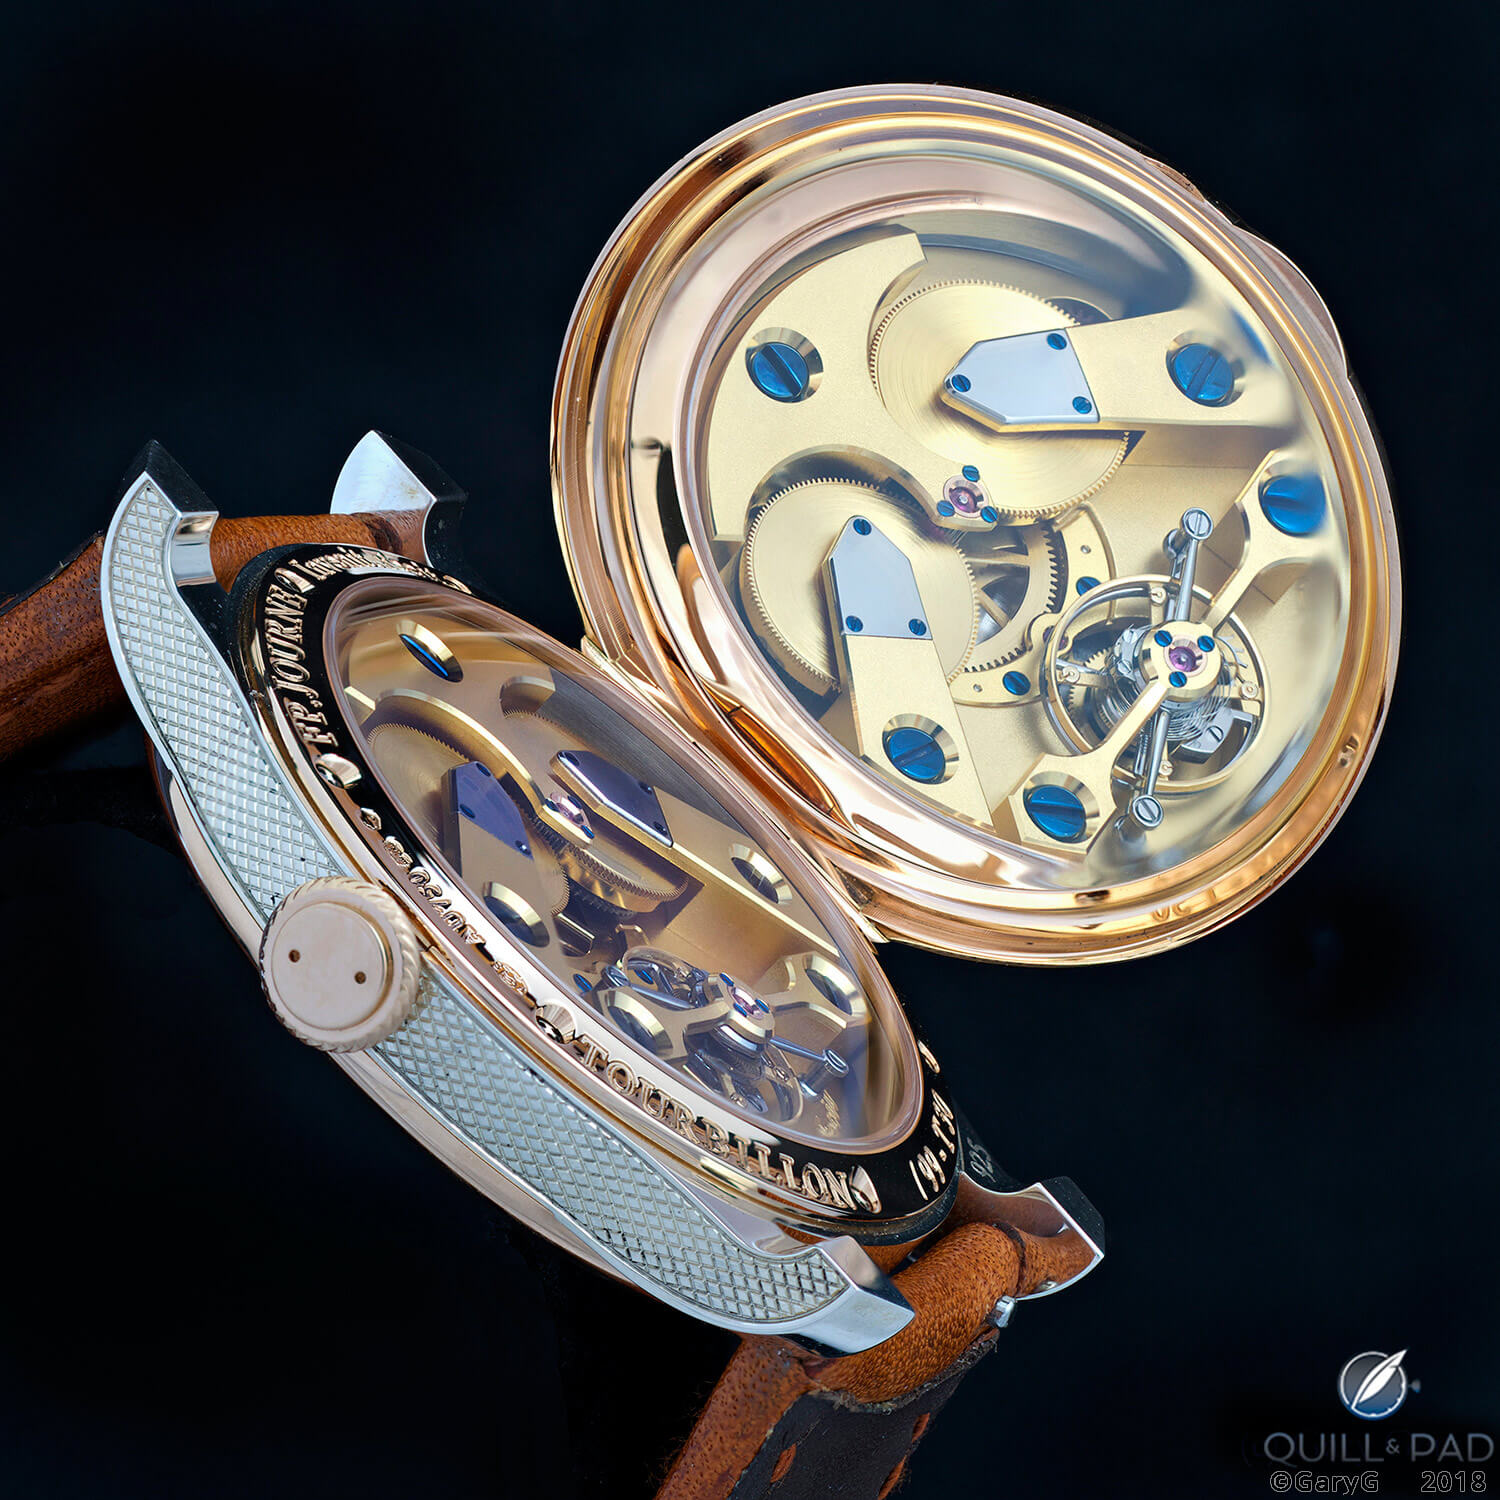 Case back and movement, F.P. Journe Anniversary Tourbillon T30